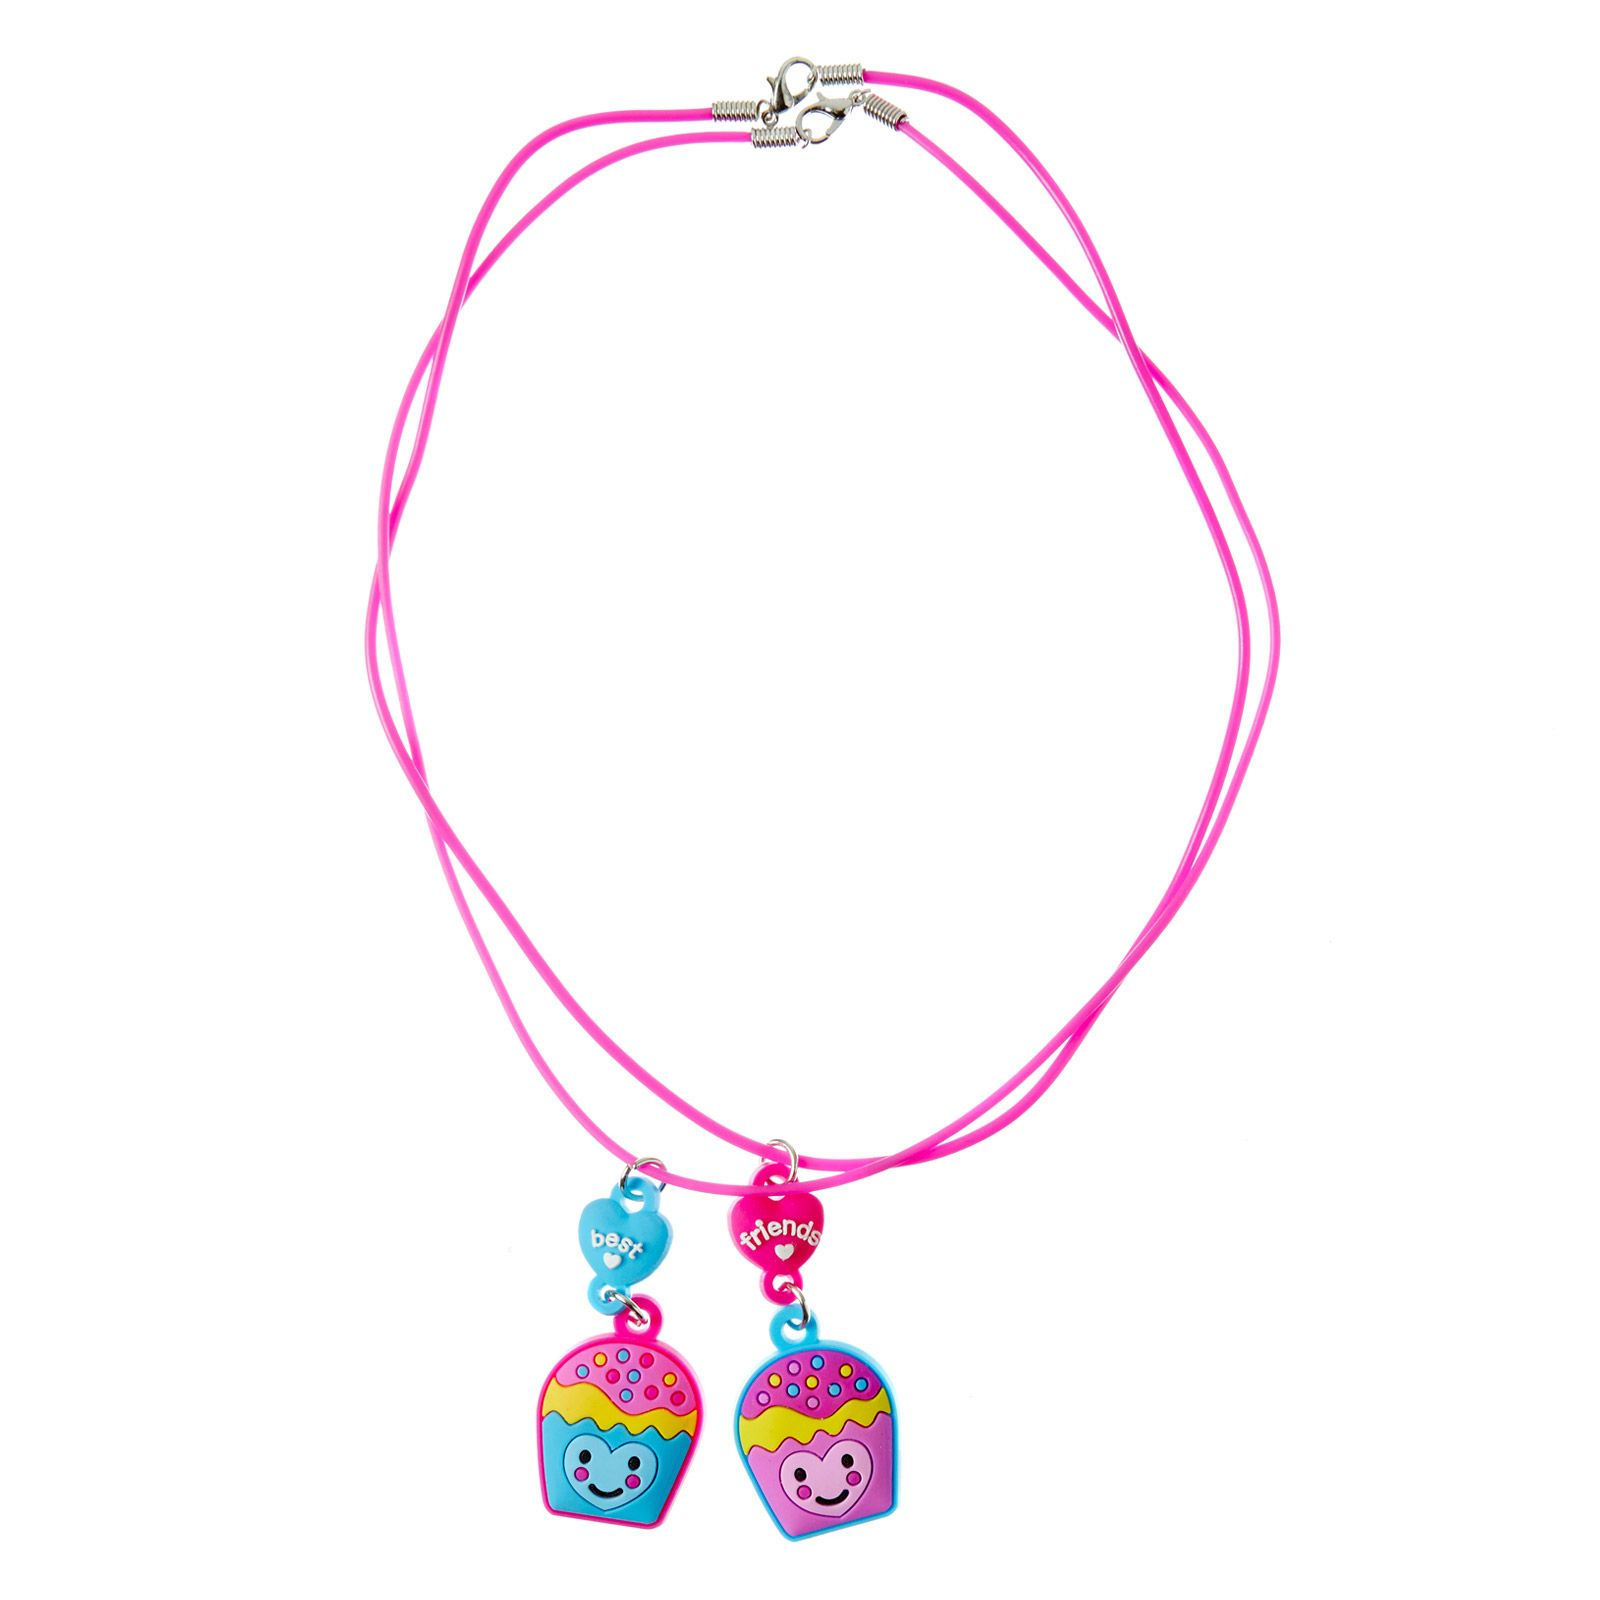 Treats Bff Necklace Smiggle Cute Magic Pinterest